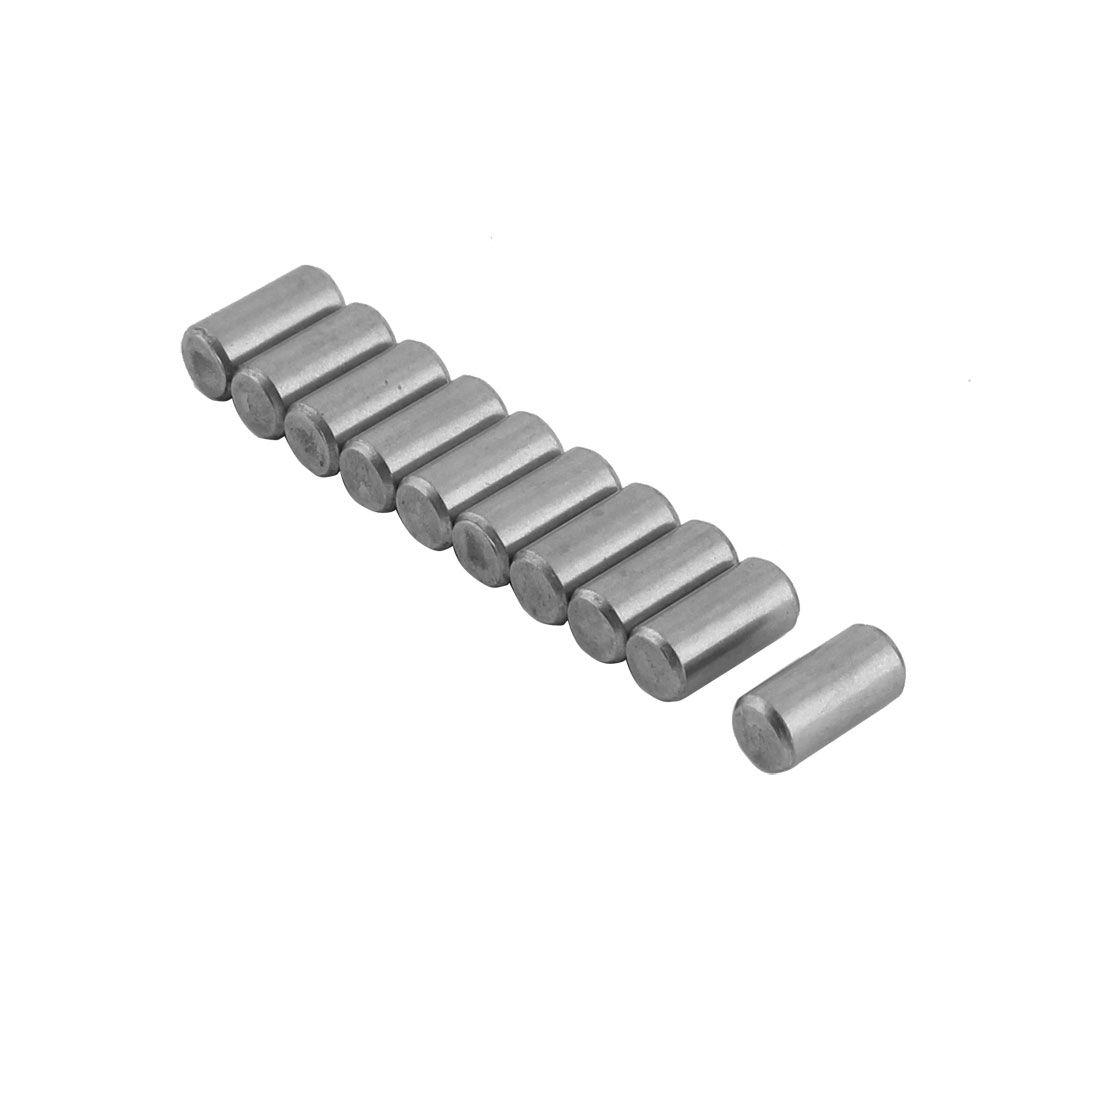 Round 304 Stainless Steel Dowel Pins Fastener Elements 0.2 Inch Nominal Diameter Tolerance 0.4 Inch Length 10 Pcs